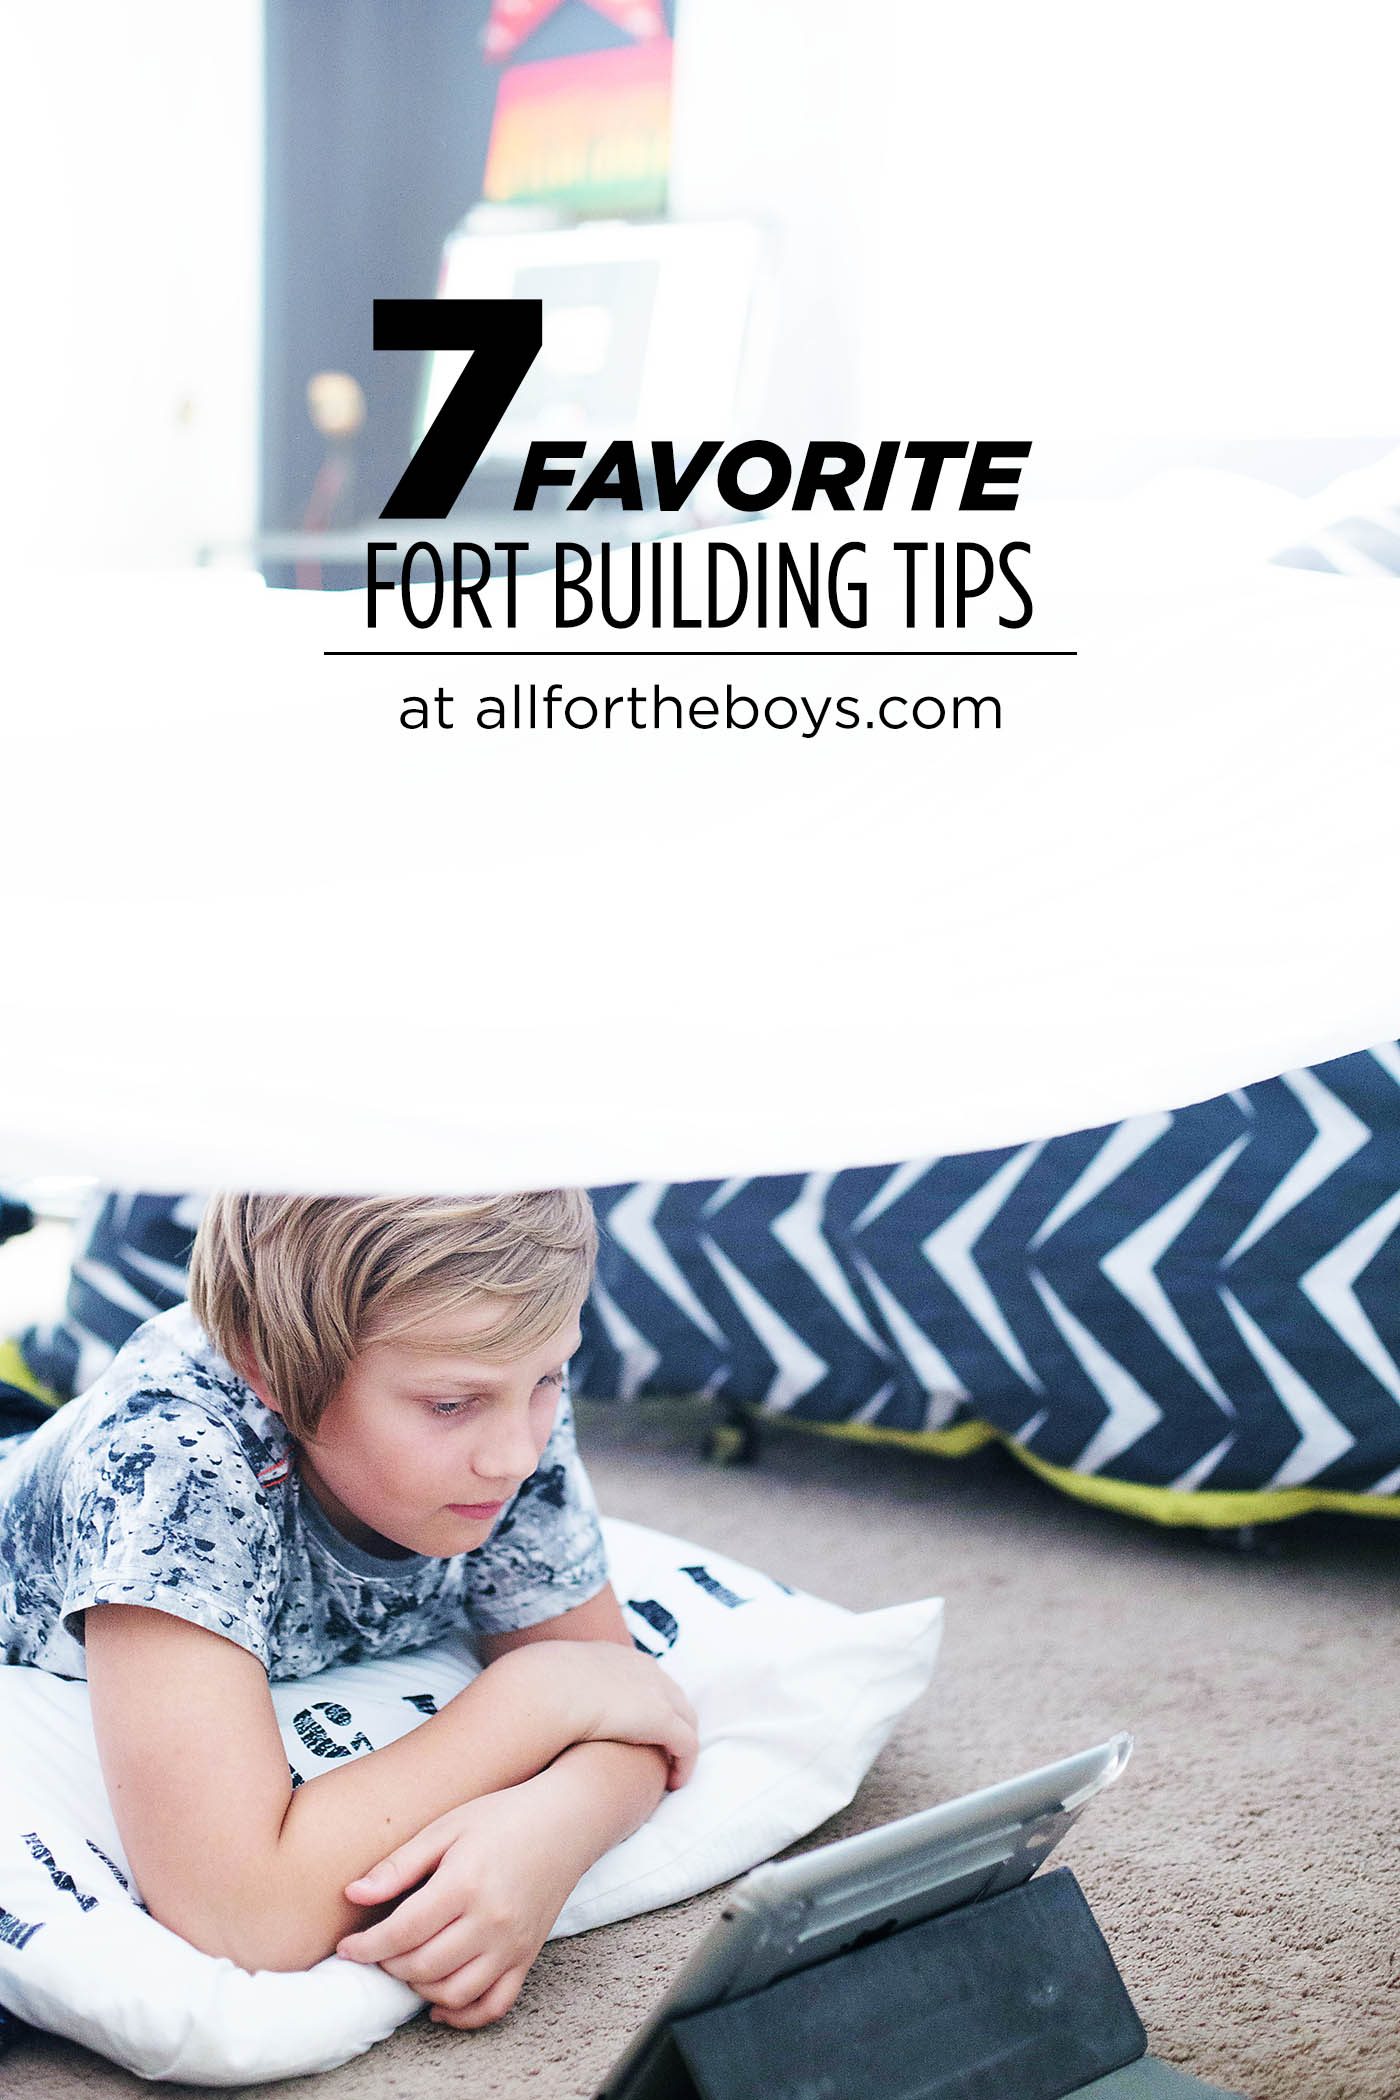 7 favorite fort building tips to make it fun, easy and safe